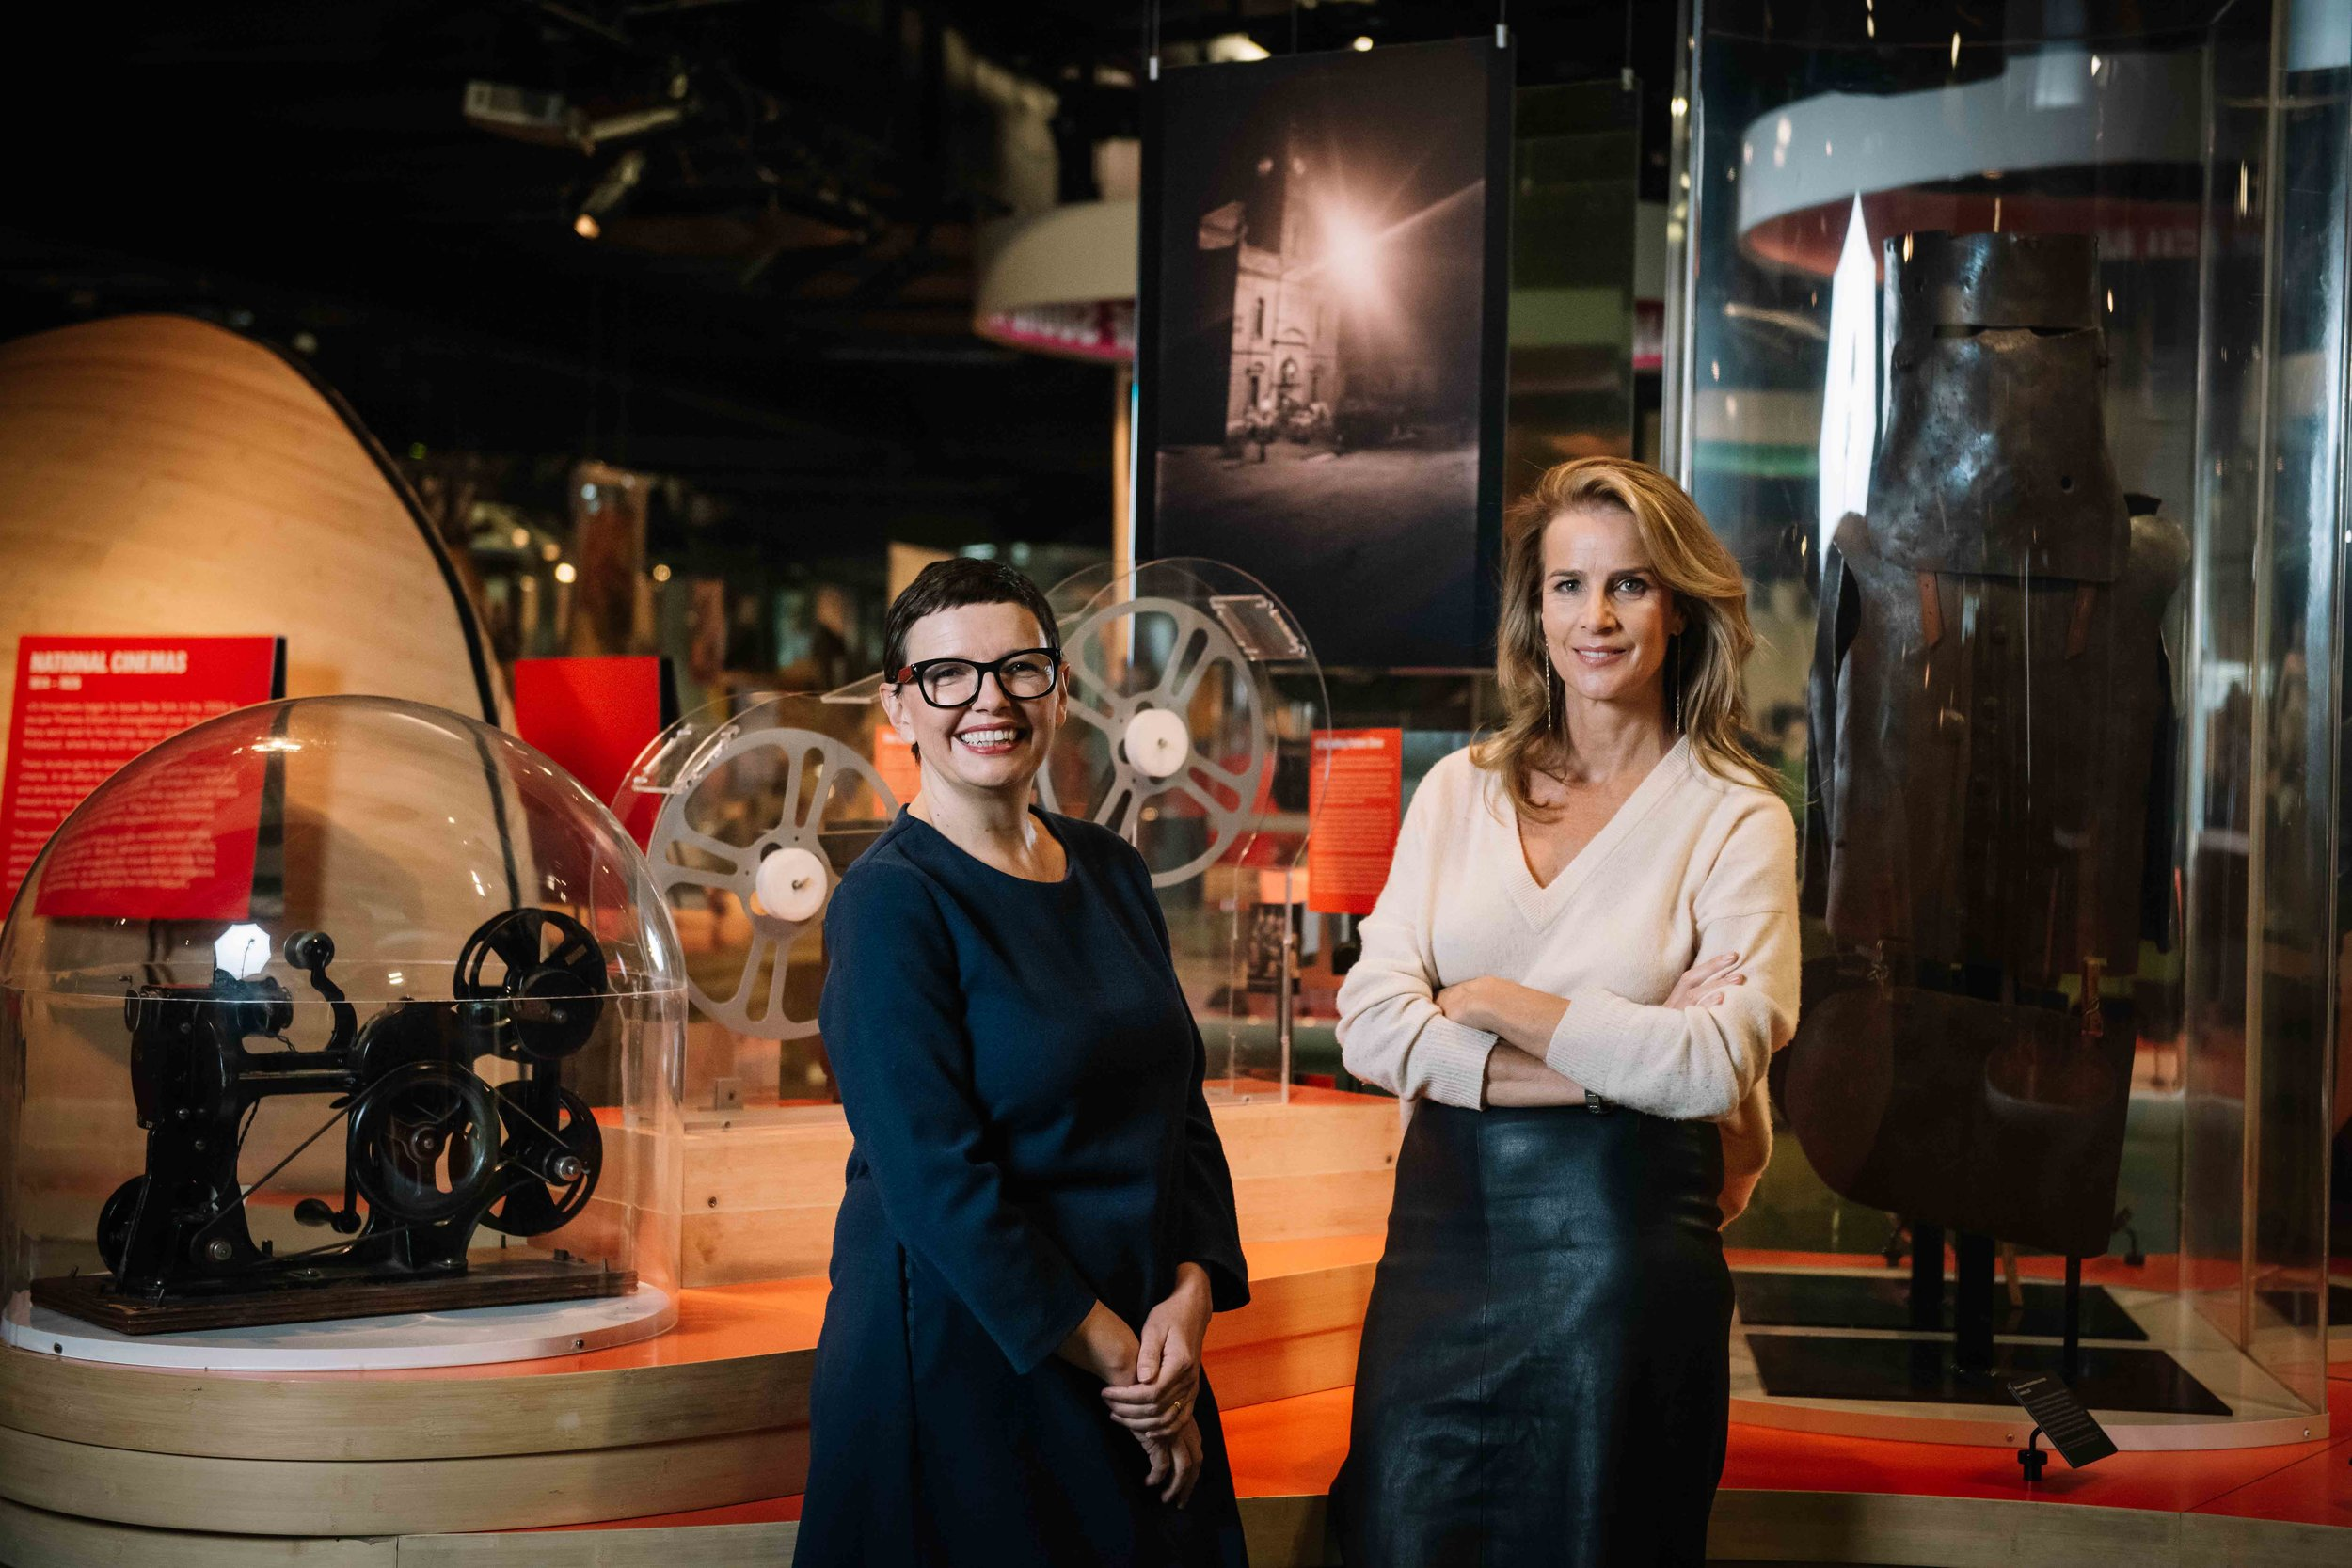 ACMI Director & CEO Katrina Sedgwick with Board Member Rachel Griffiths in Screen Worlds. Photographer: Phoebe Powell